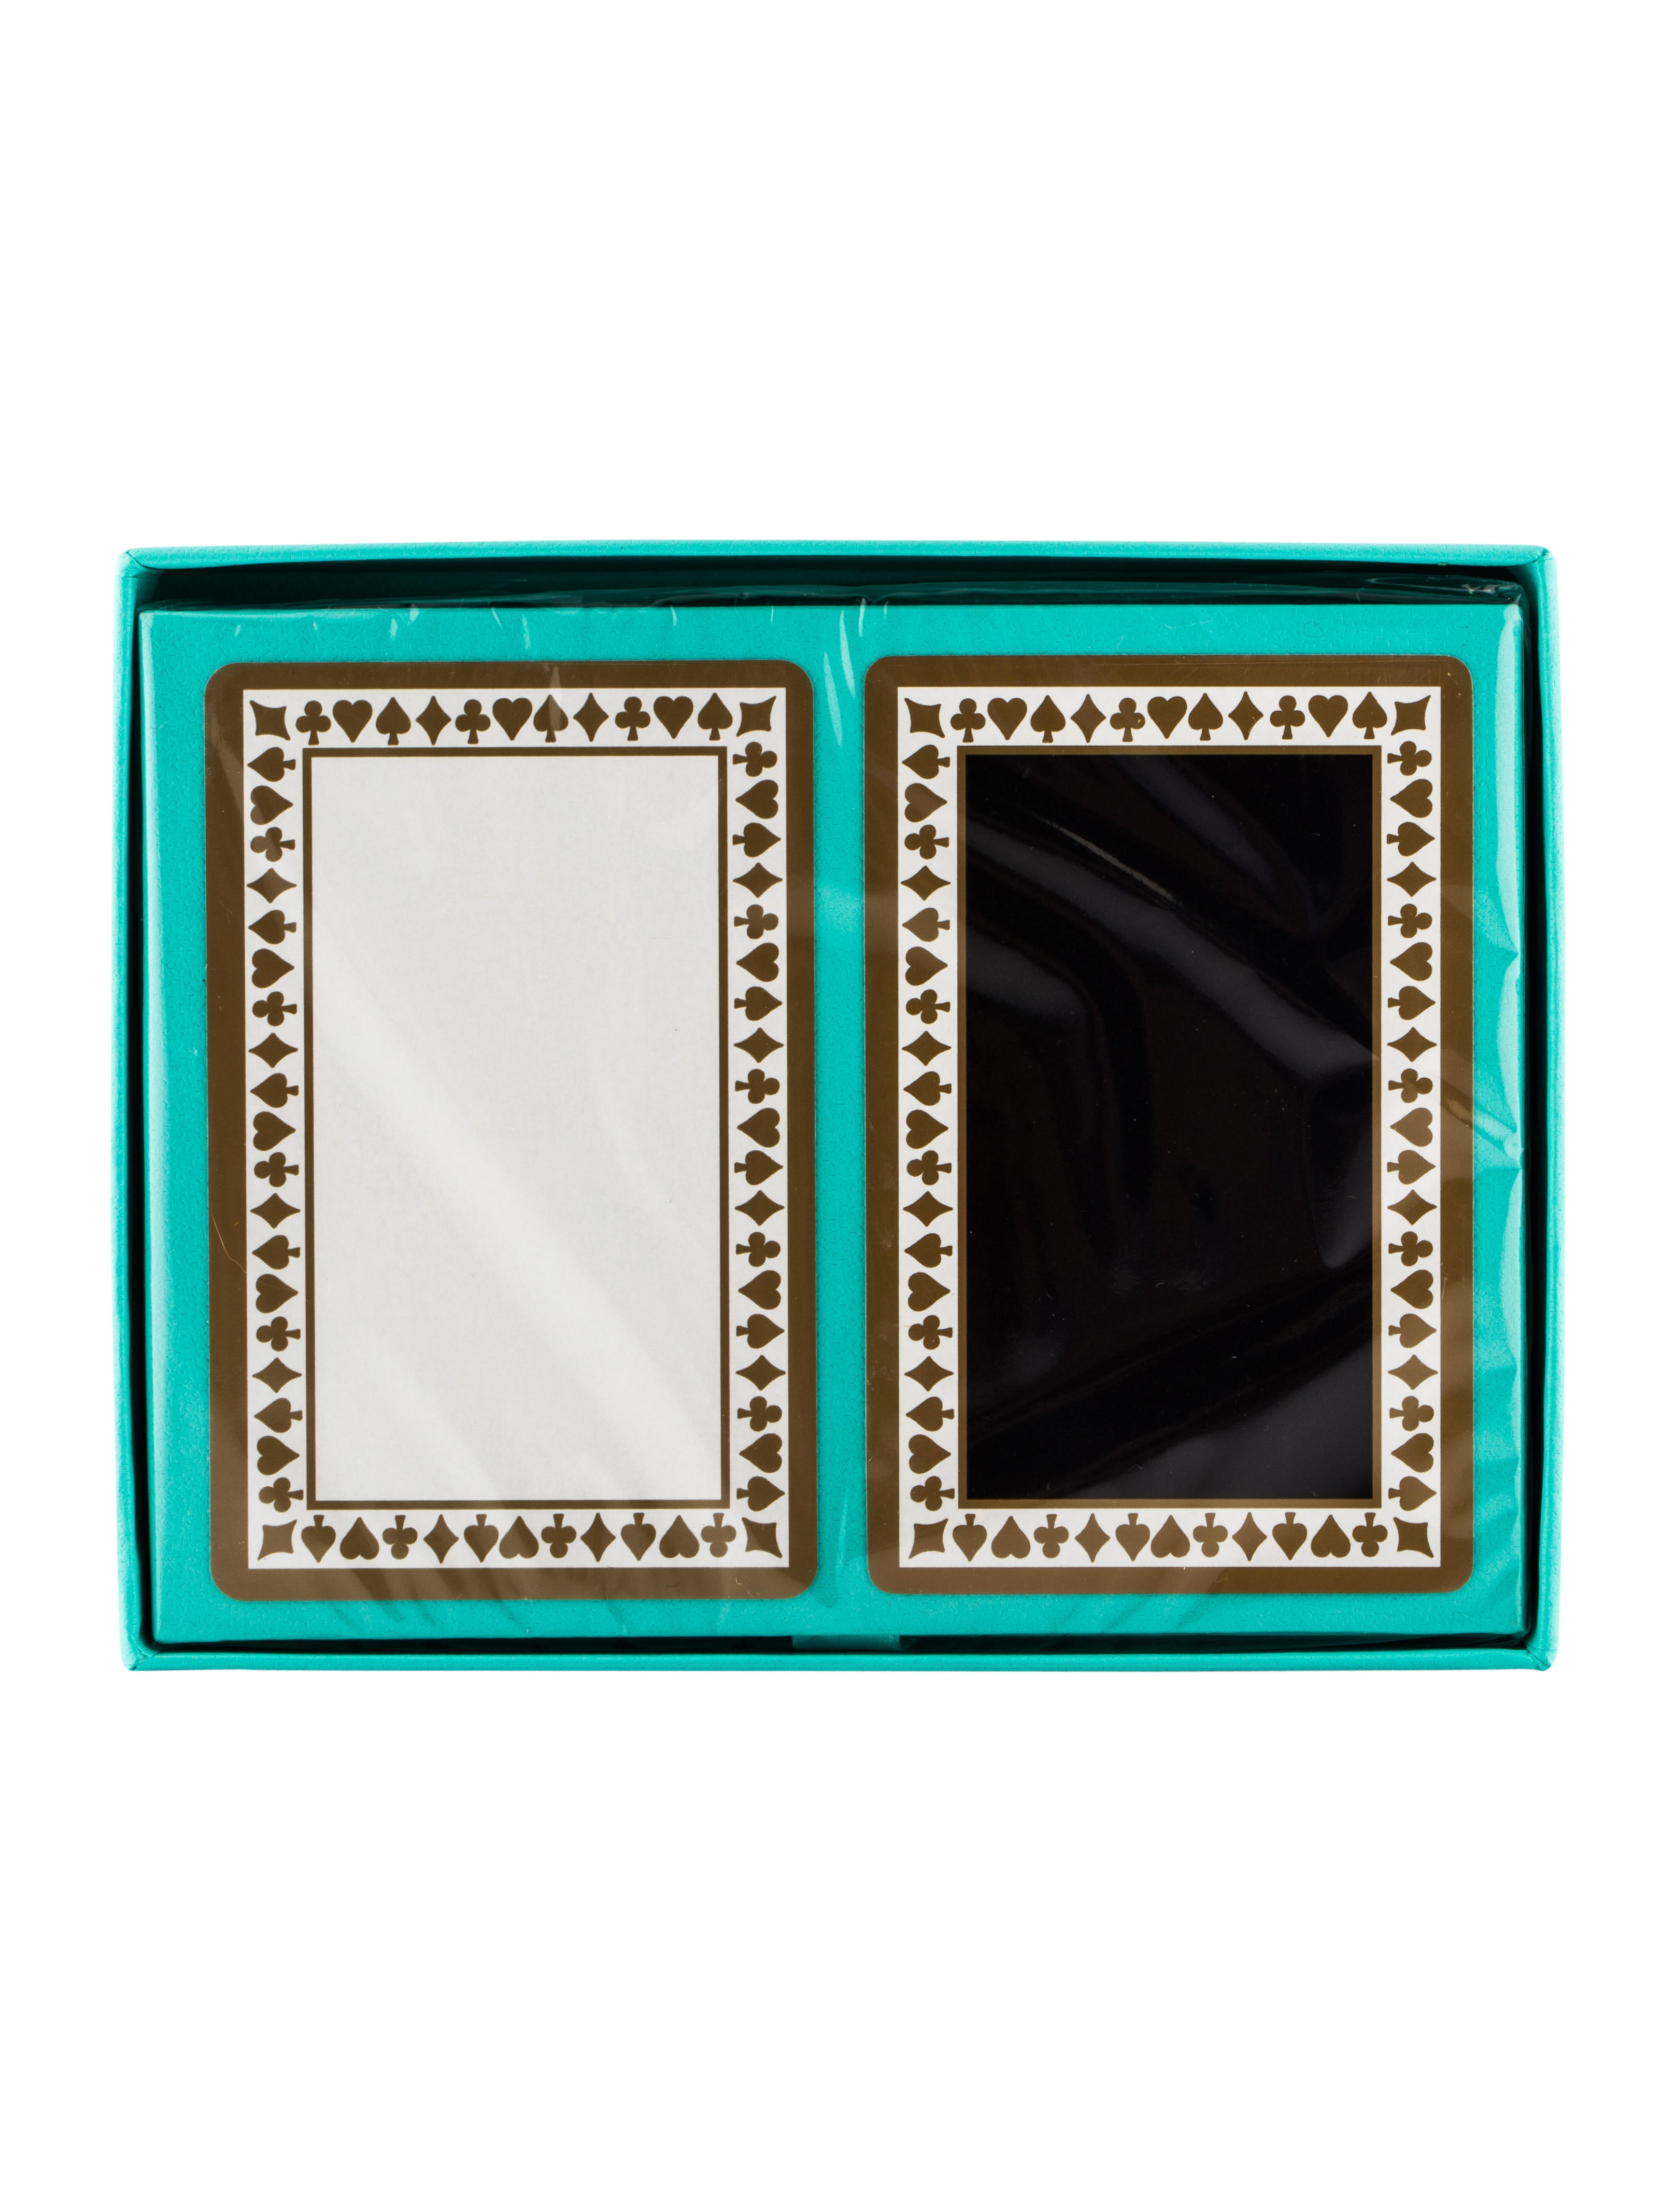 Tiffany Co Playing Cards Set Decor And Accessories